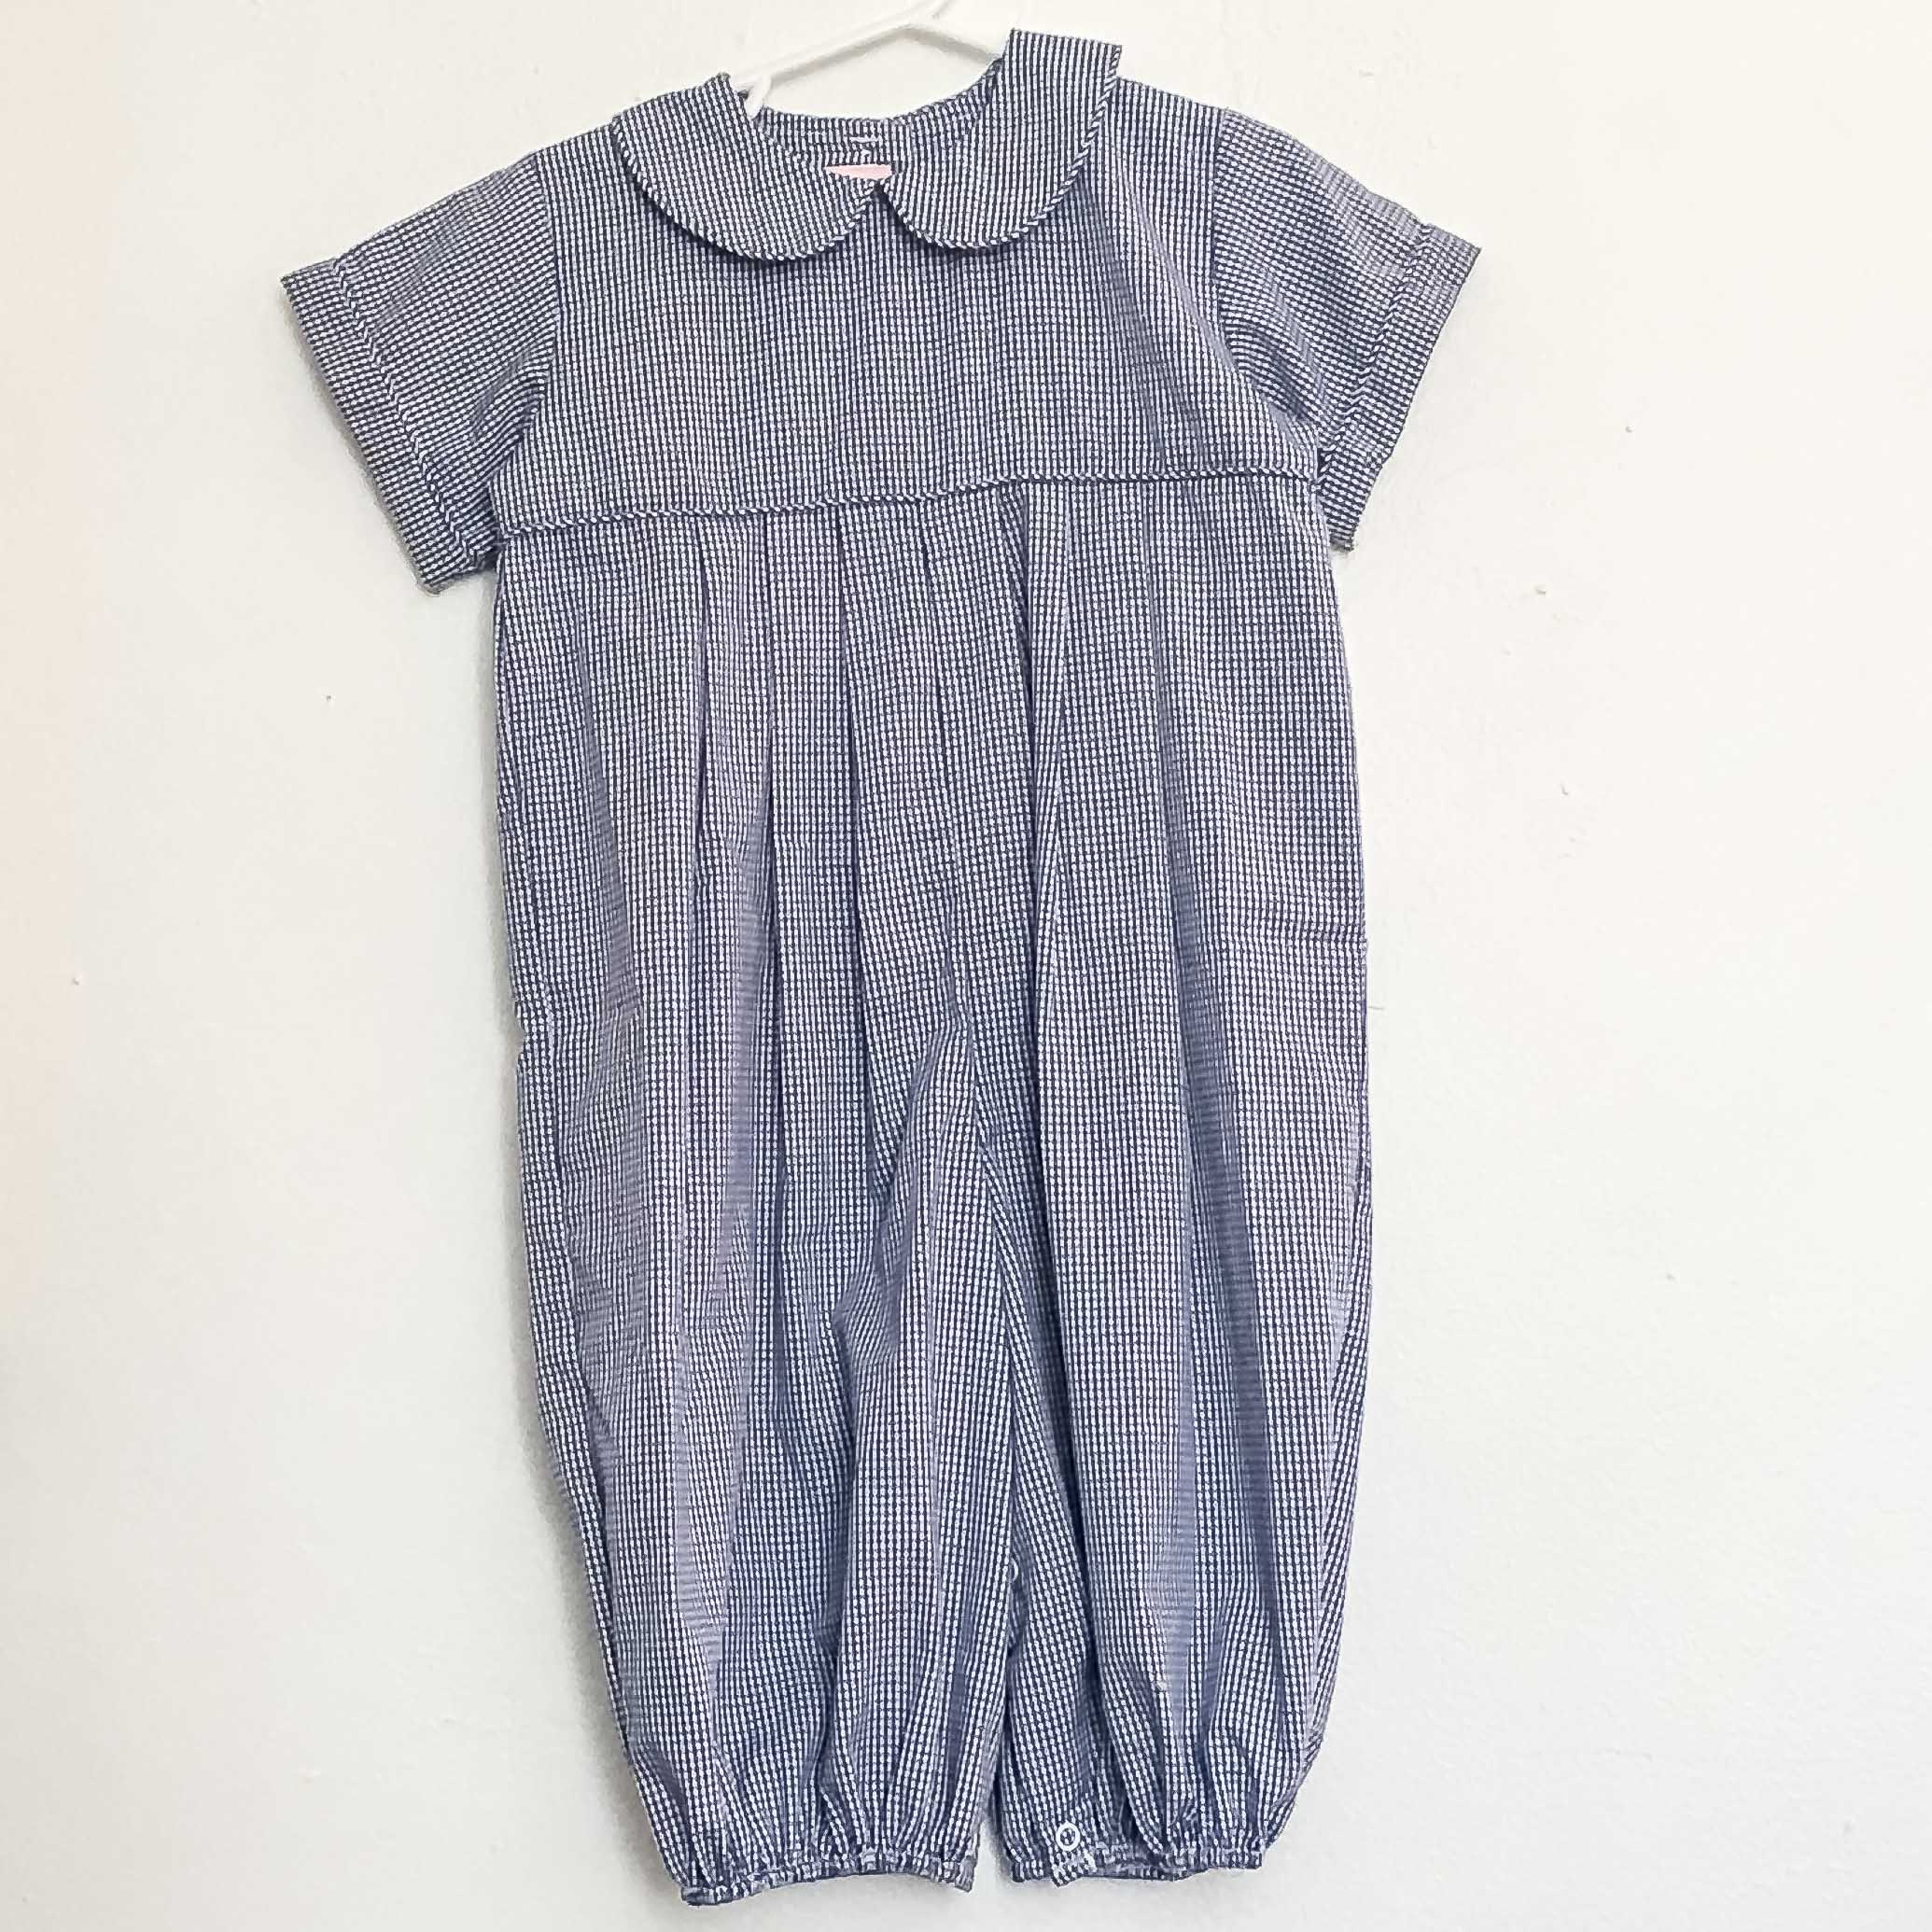 ORPCLOTHES-50.jpg